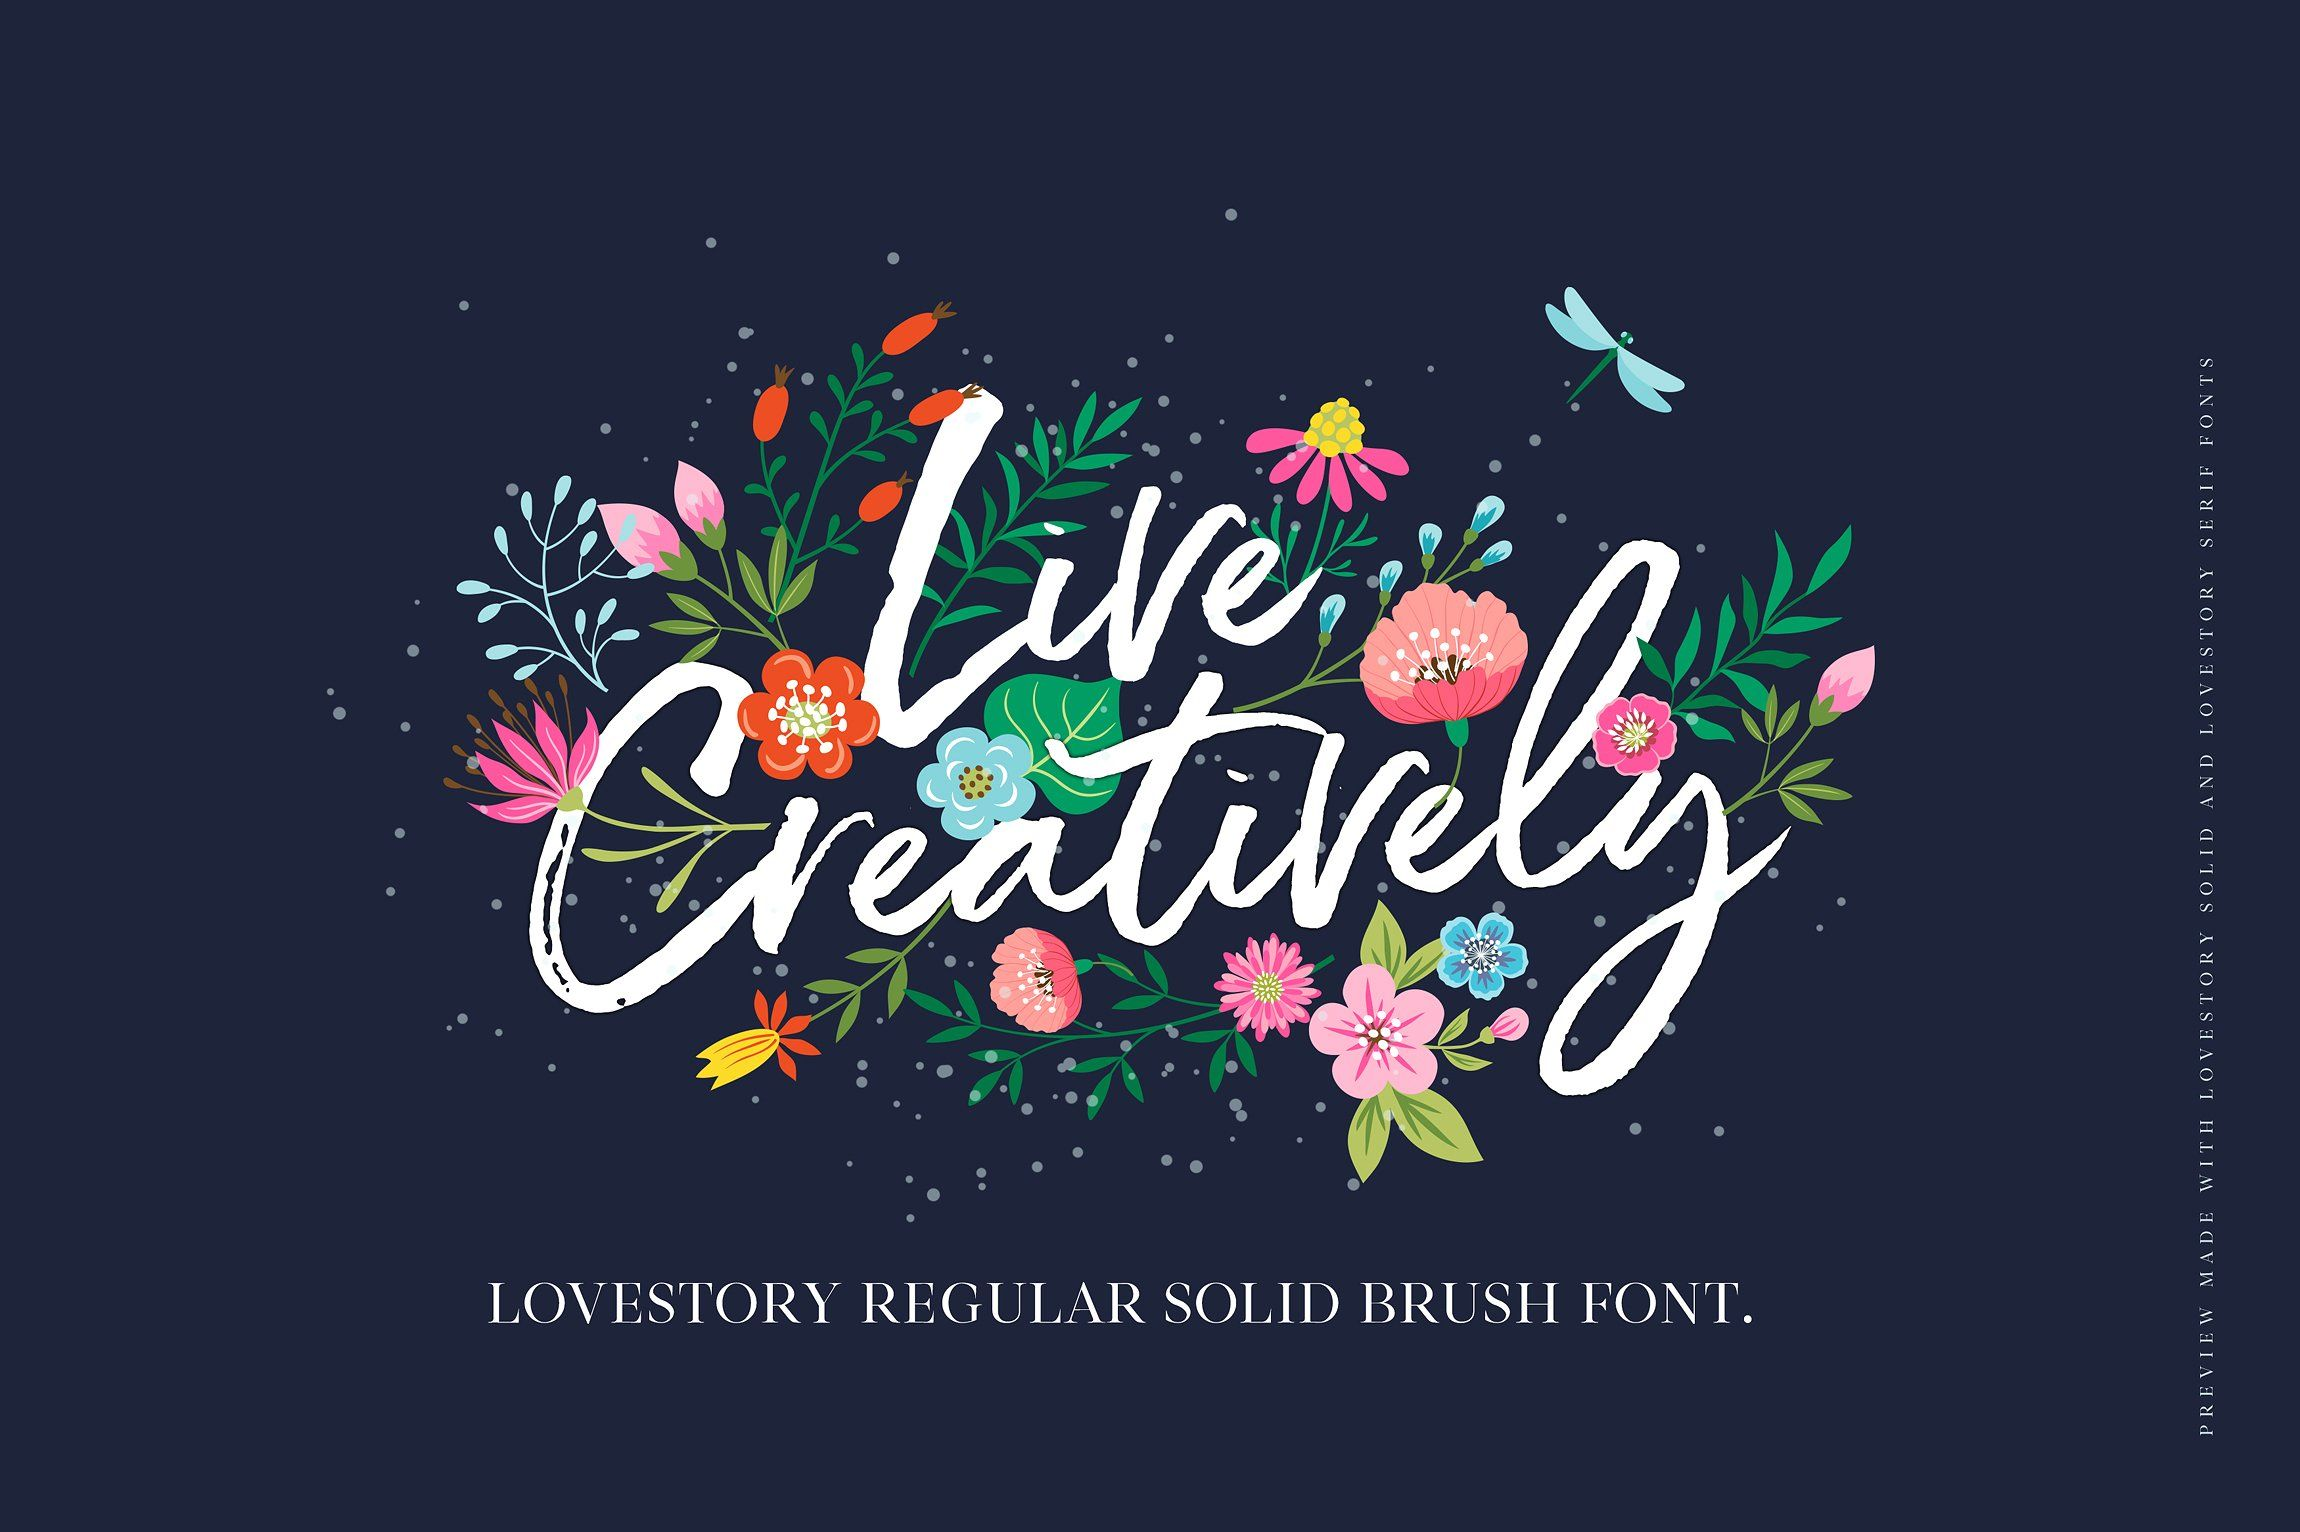 The Lovestory Font Collection By Nicky Laatz On Creativemarket